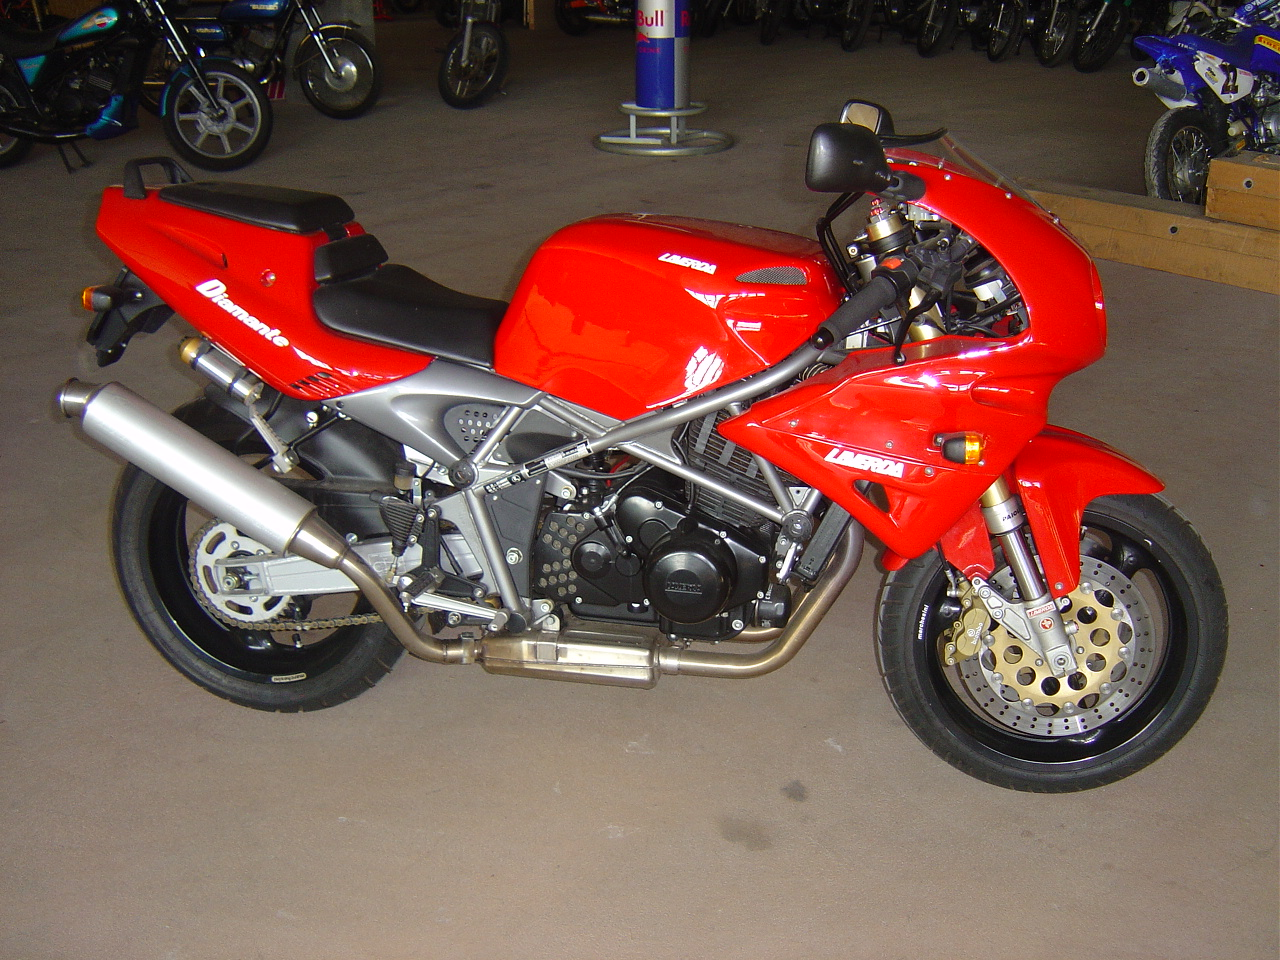 Laverda 650 Ghost Strike images #101800